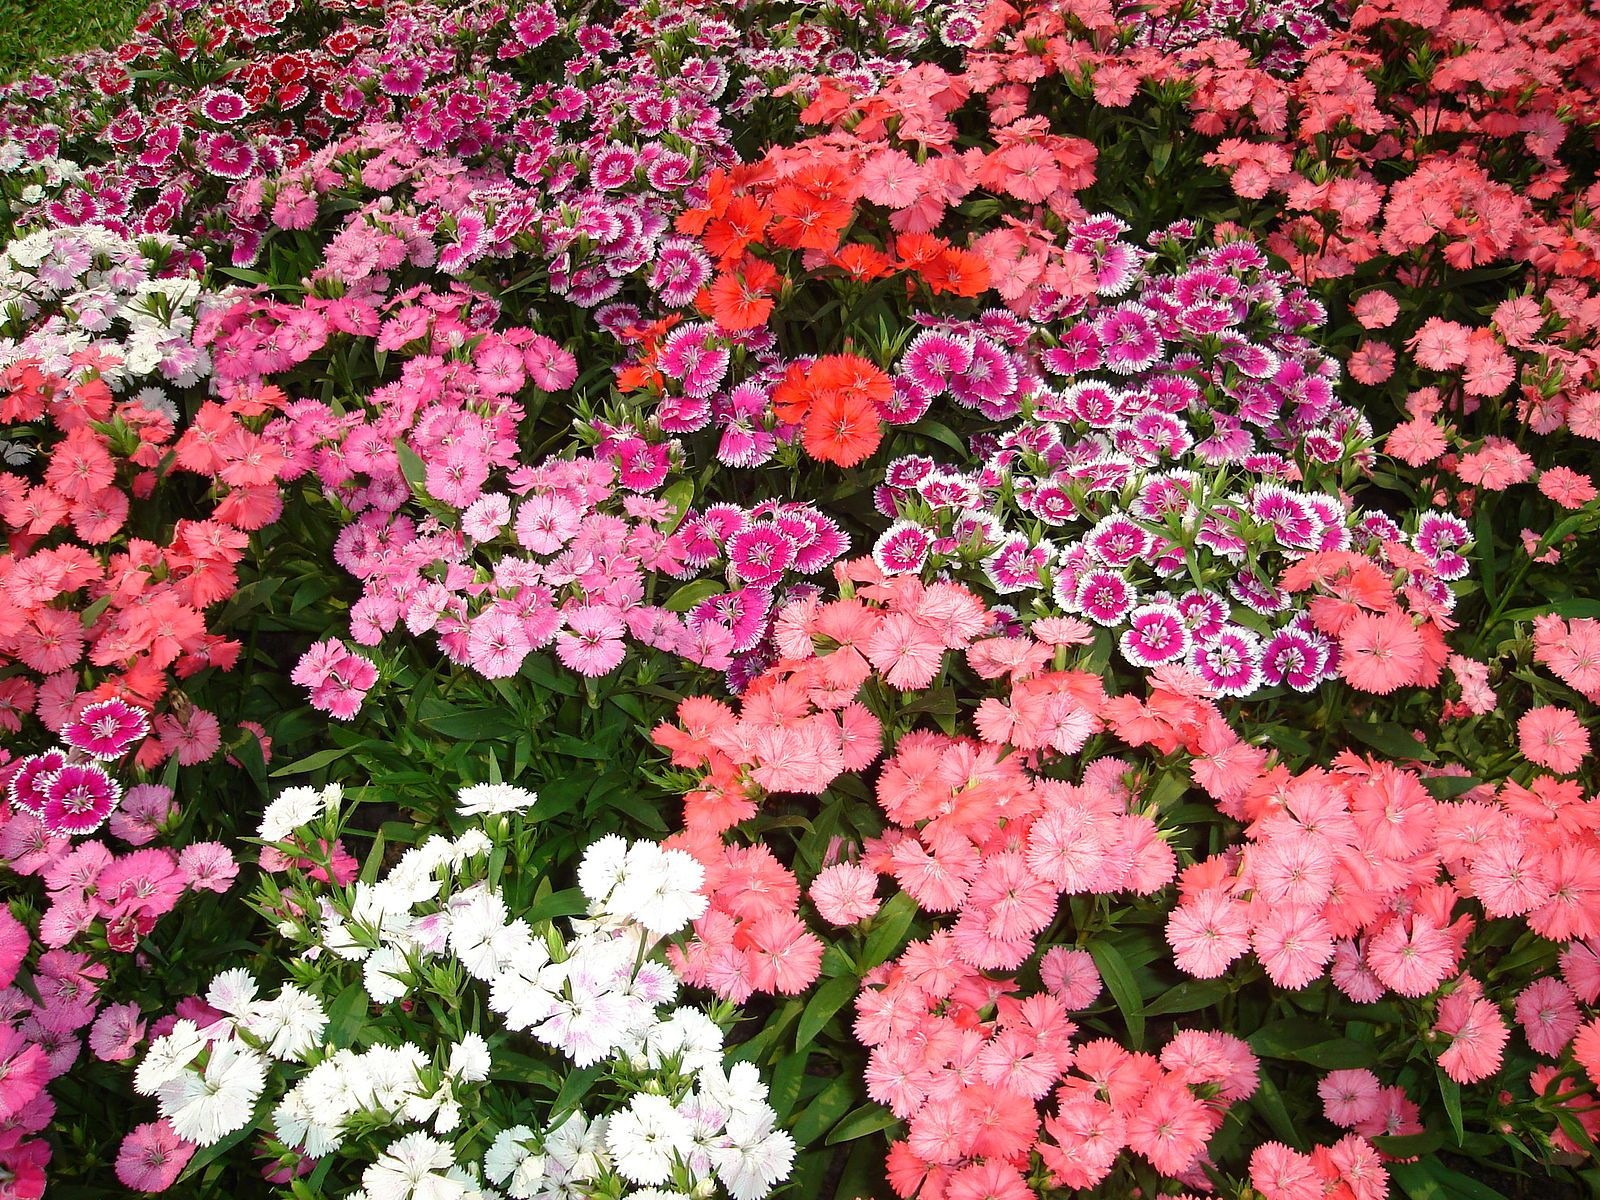 File:Flower Garden Found In Tak Thailand 1